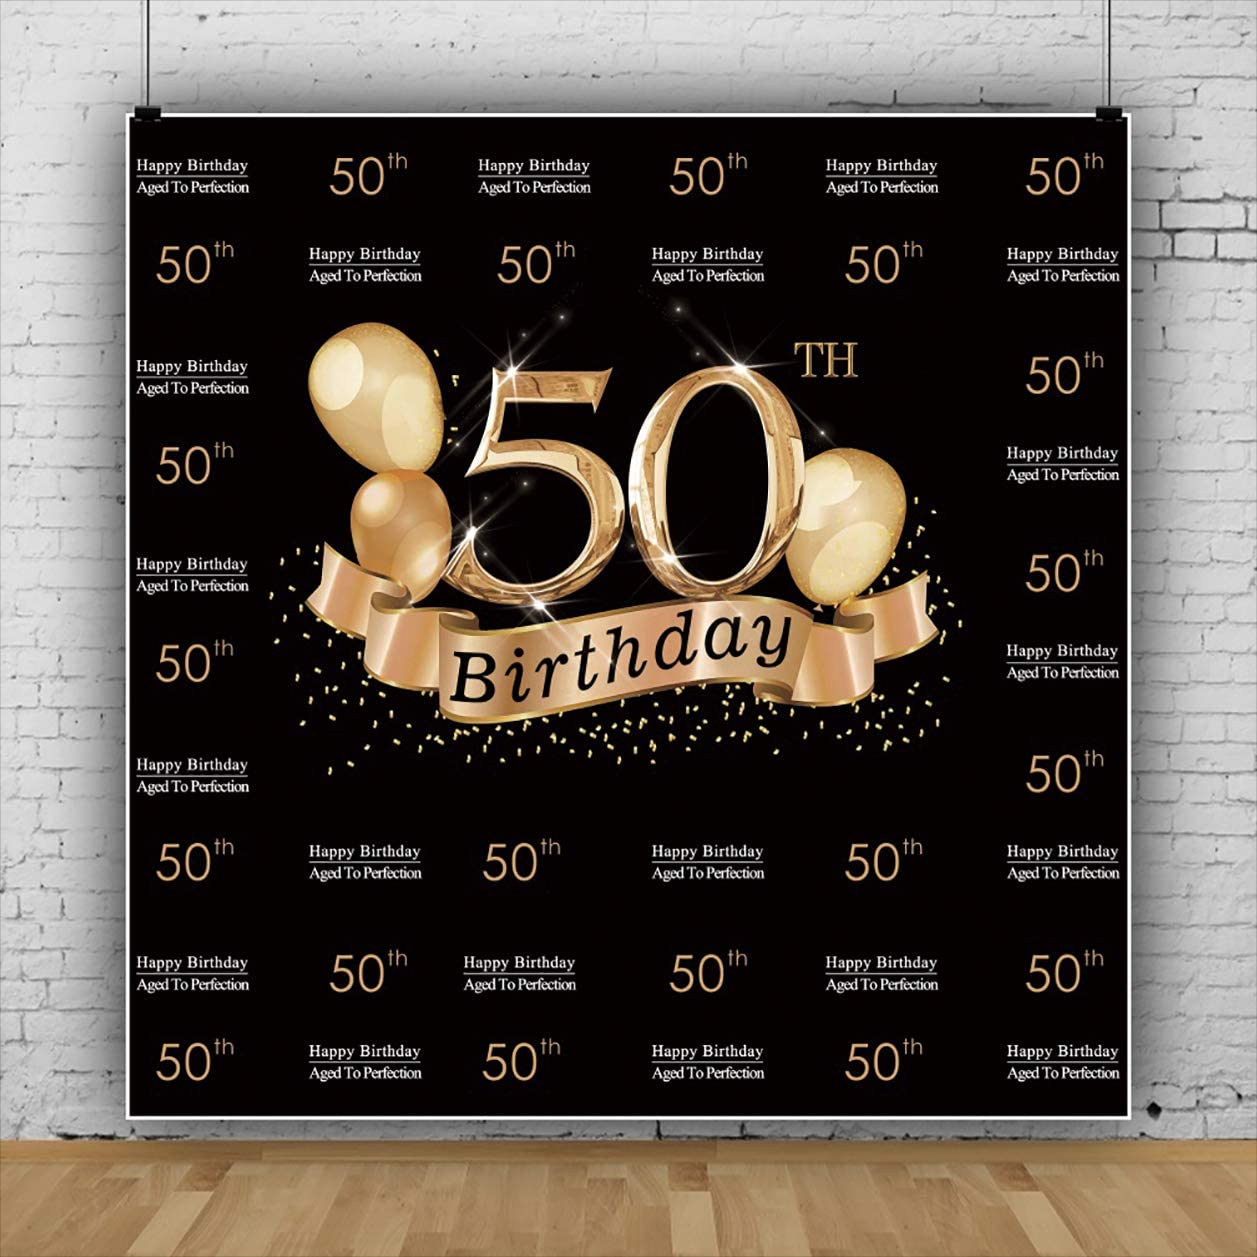 YEELE 50th Birthday Photography Background 10x10ft Golden 50 Birthday Step and Repeat Backdrop Woman Man Mother Portrait Dessert Table Decor Photo Booth Photoshoot Banner Digital Wallpaper